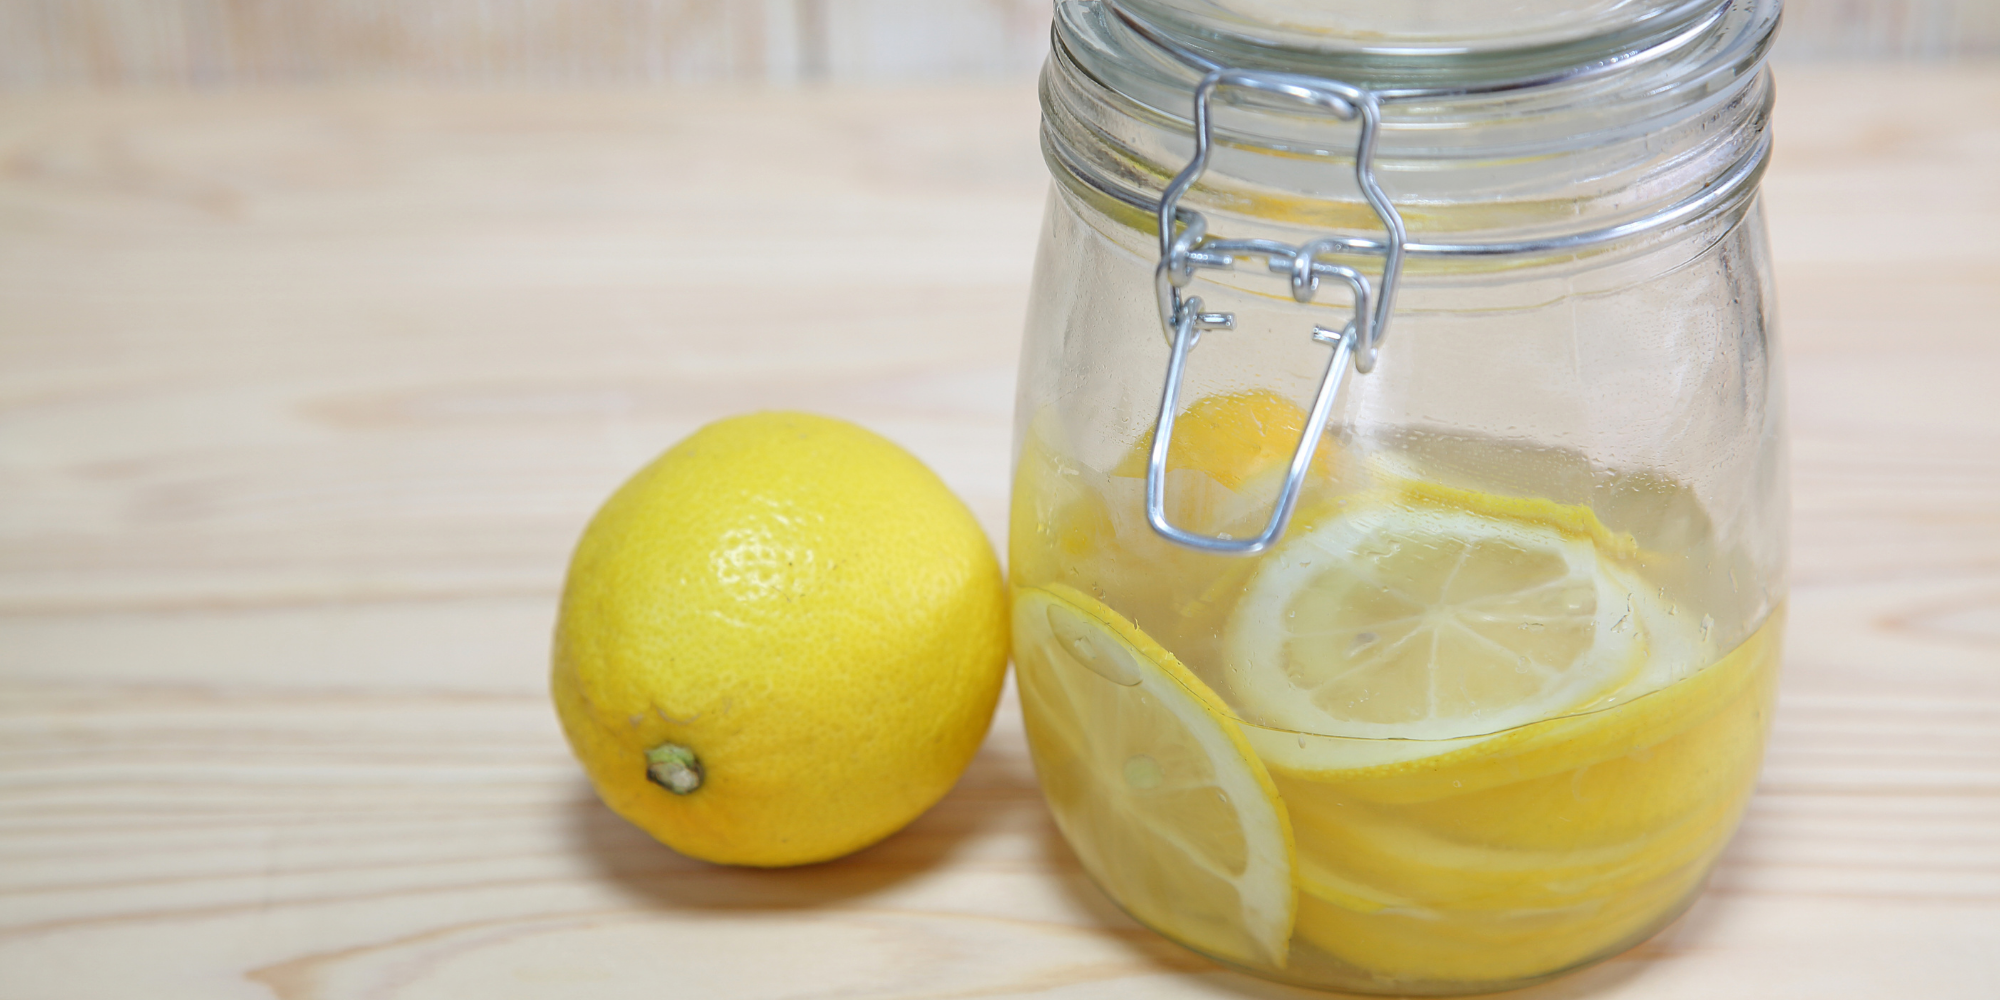 Lemon juice to remove stains from menstrual cup